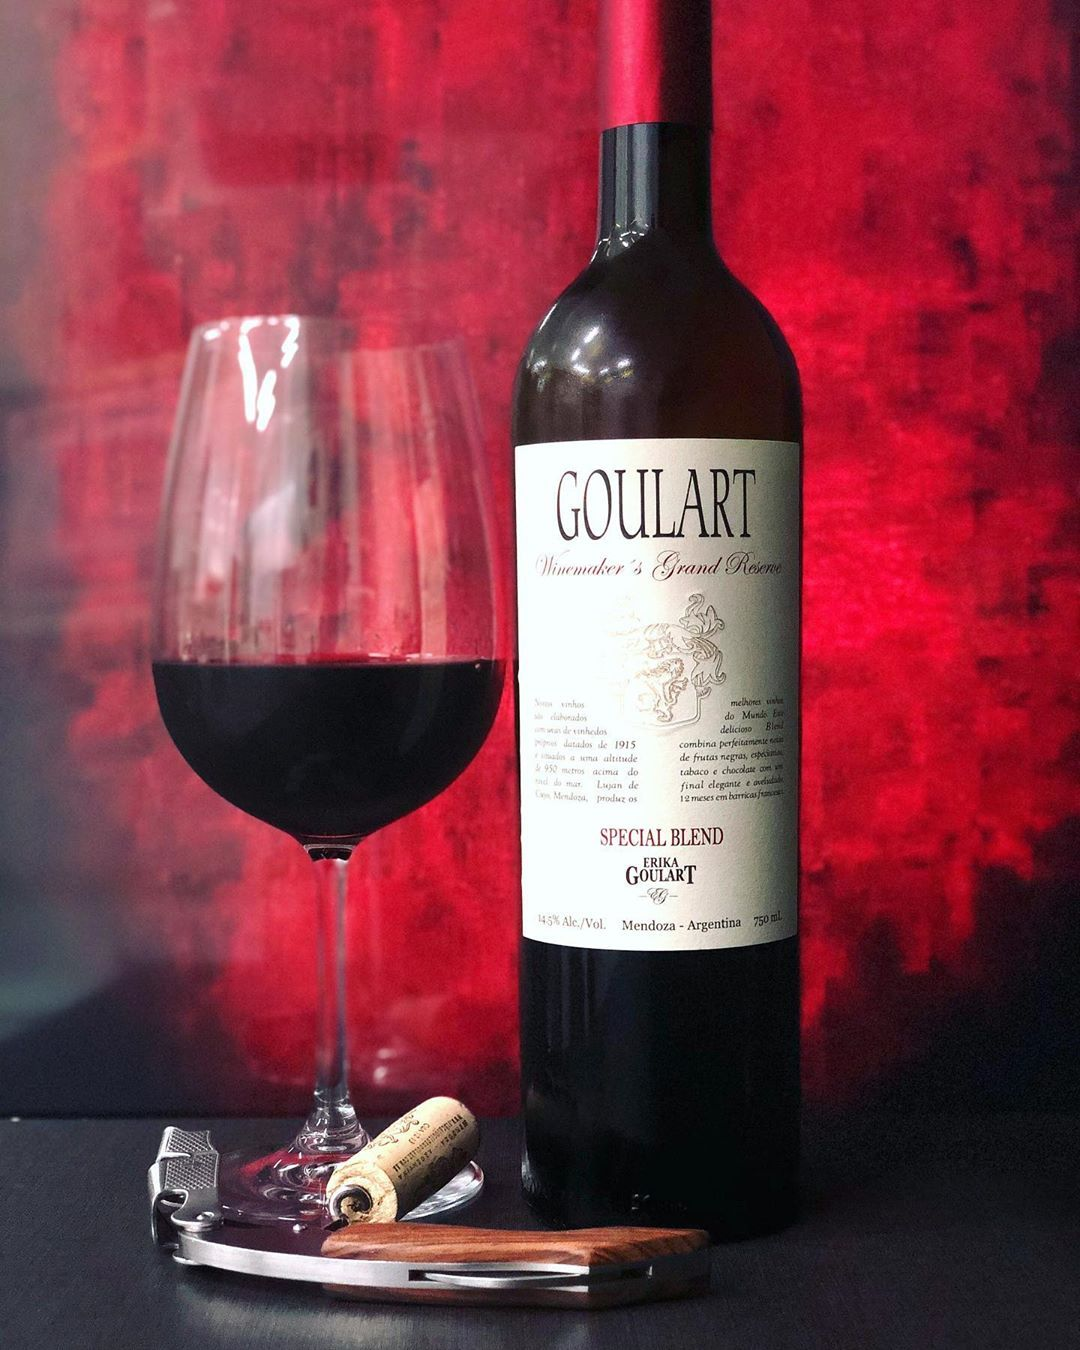 Photo By Mi Taraborelli Brasil Goulart Winemaker S Grand Reserv Special Blend 2013 14 5 Alc Vol 60 Malbec 40 Cabern Alcoholic Drinks Red Wine Wine